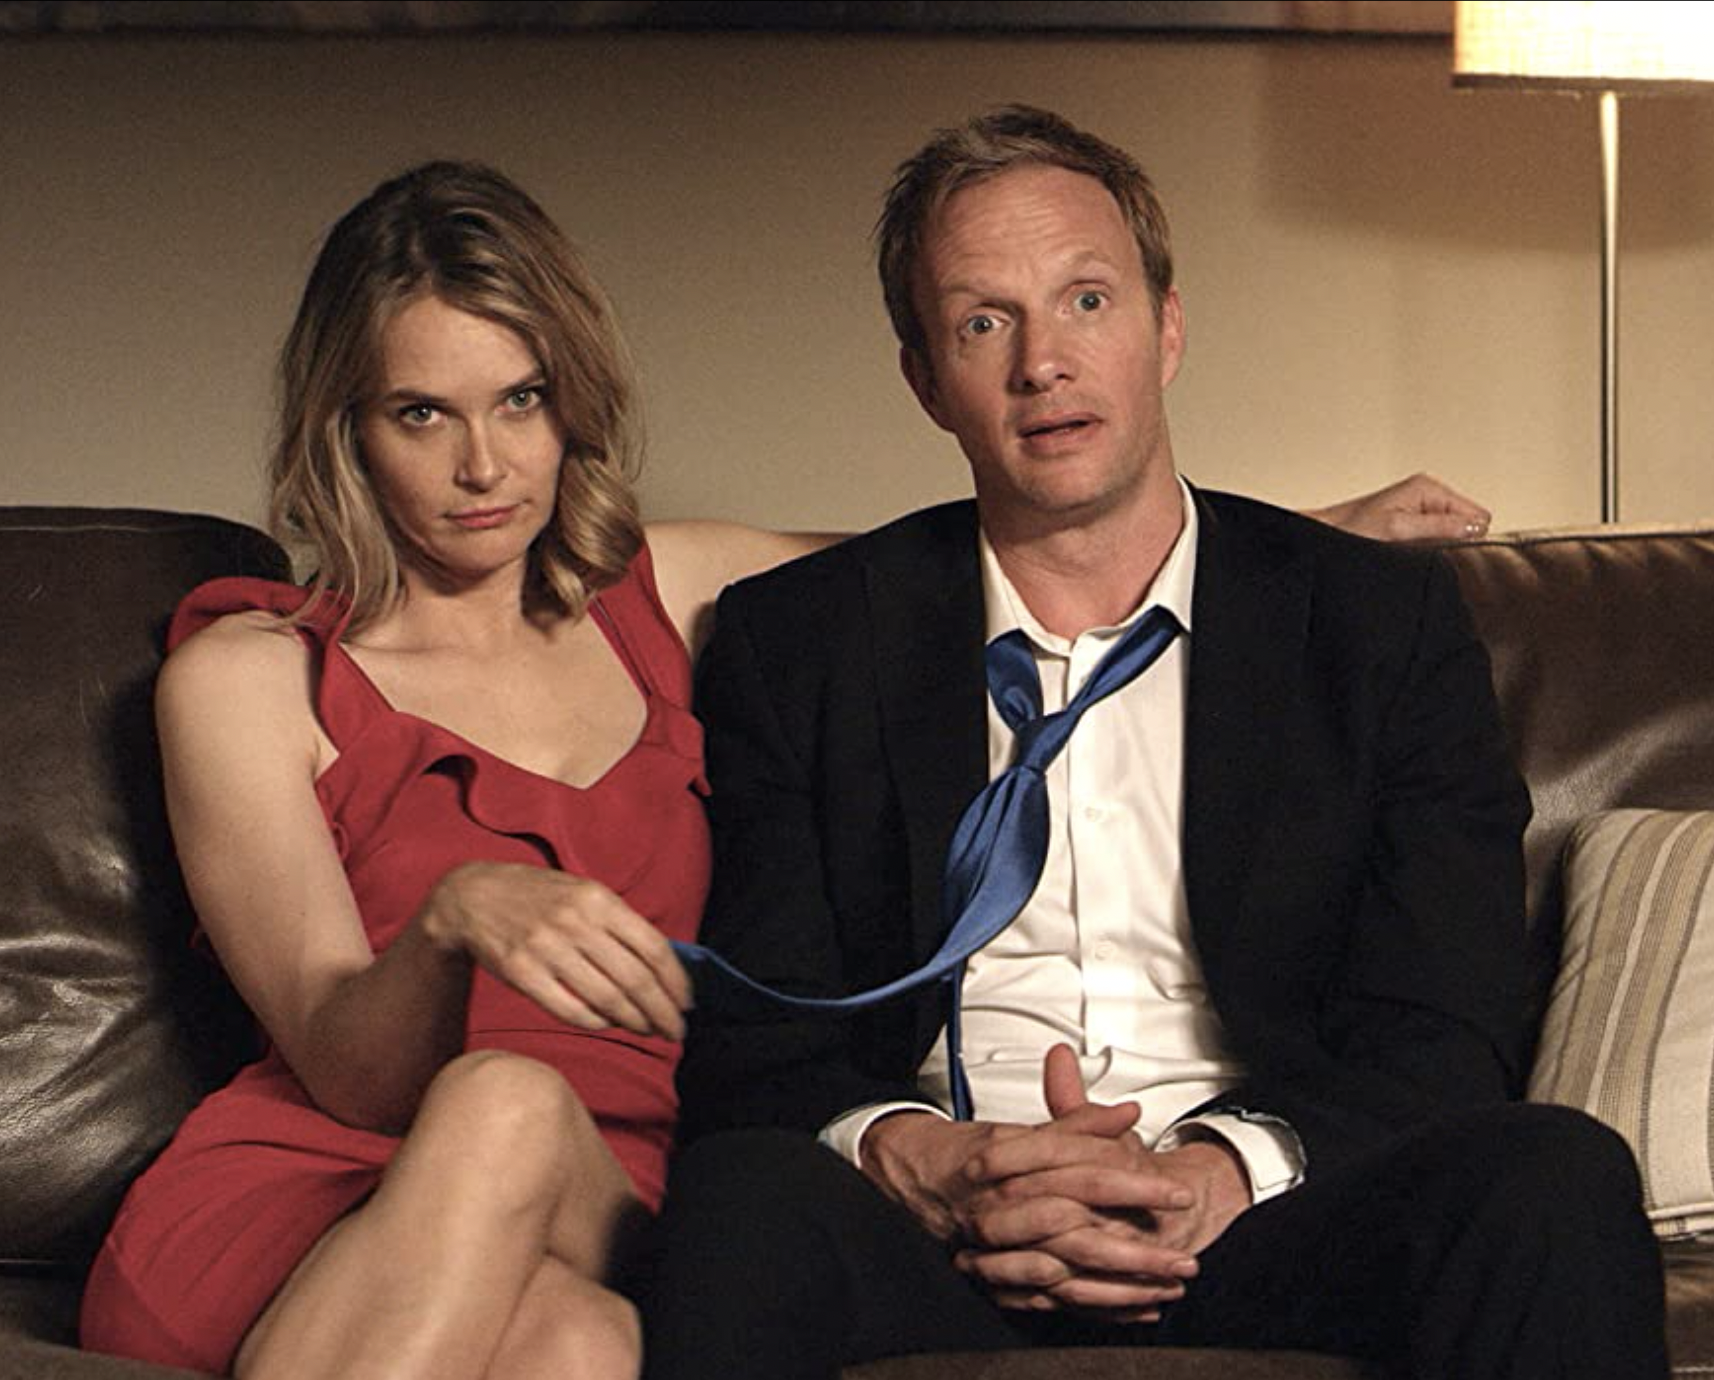 Kayla, a blonde woman in a red dress, sits very close to Luke on a brown leather couch. One of her arms is across the back of the couch while her other had plays idly with the end of his tie. He looks somewhat terrified. She looks like she is stalking something.